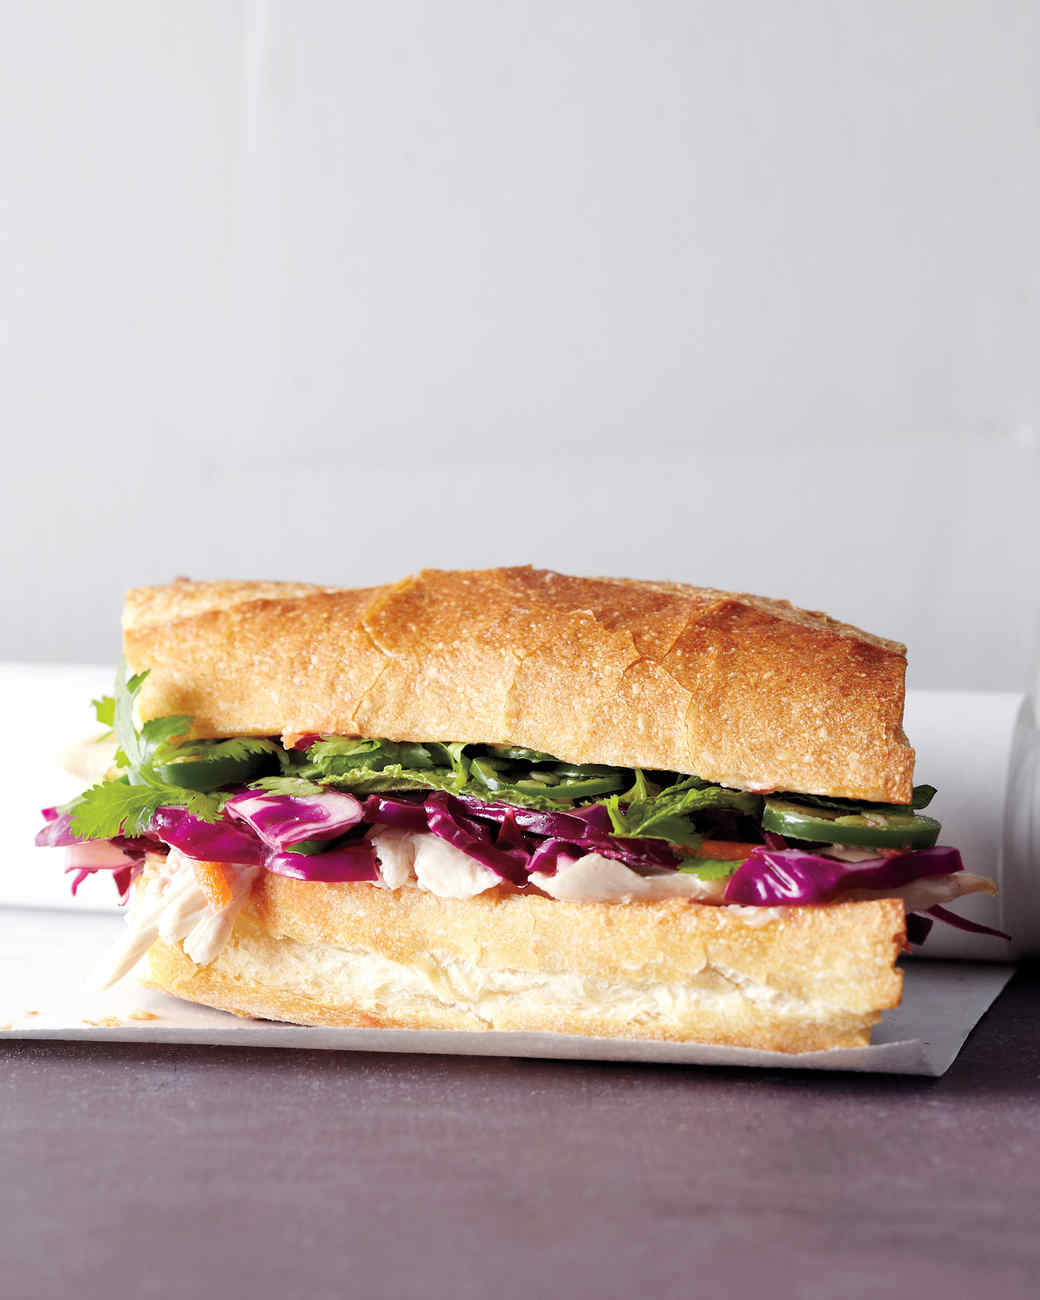 med106560_0311_sandwich_asian.jpg